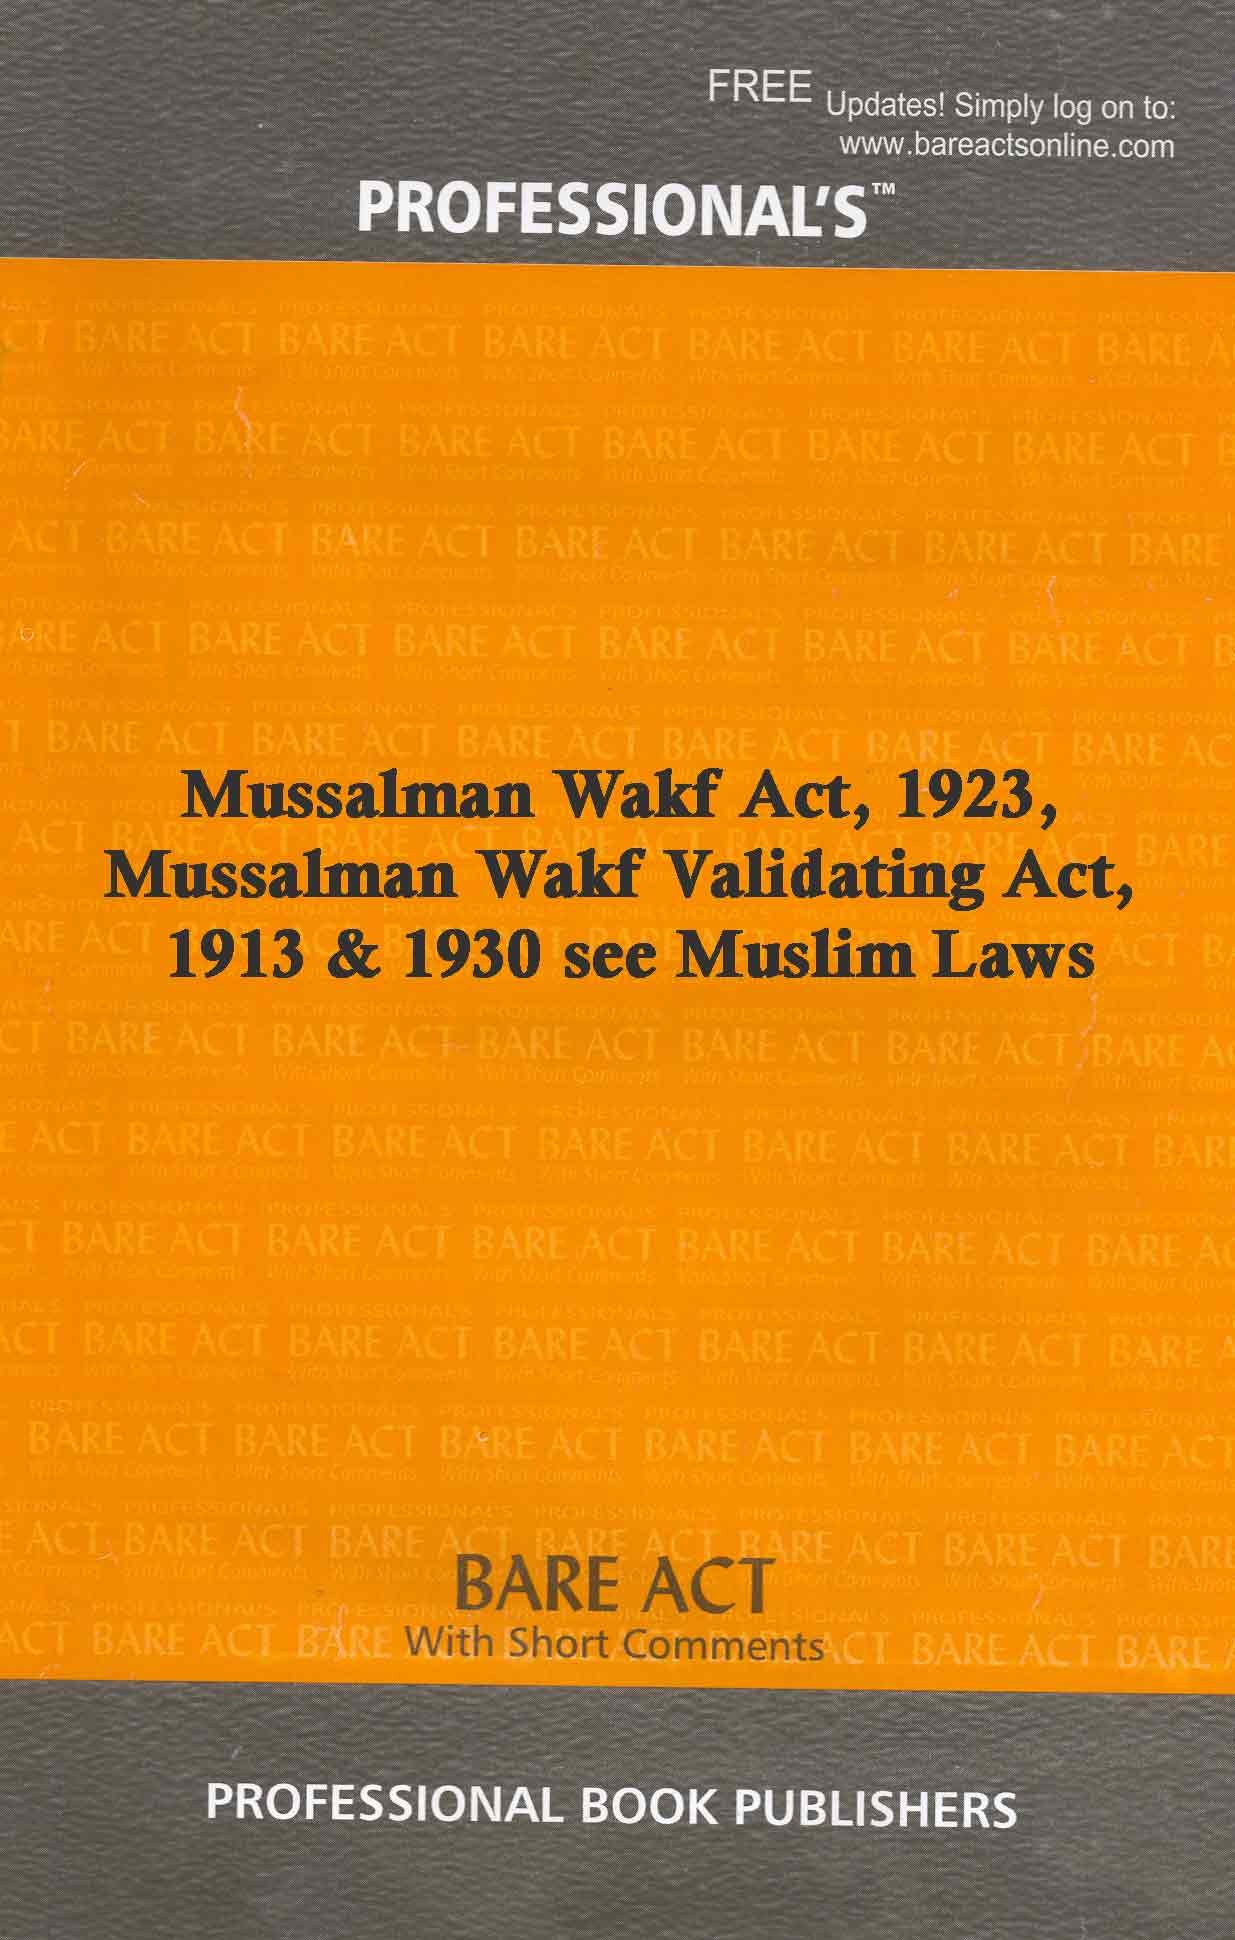 Musalman wakf validating act 1930